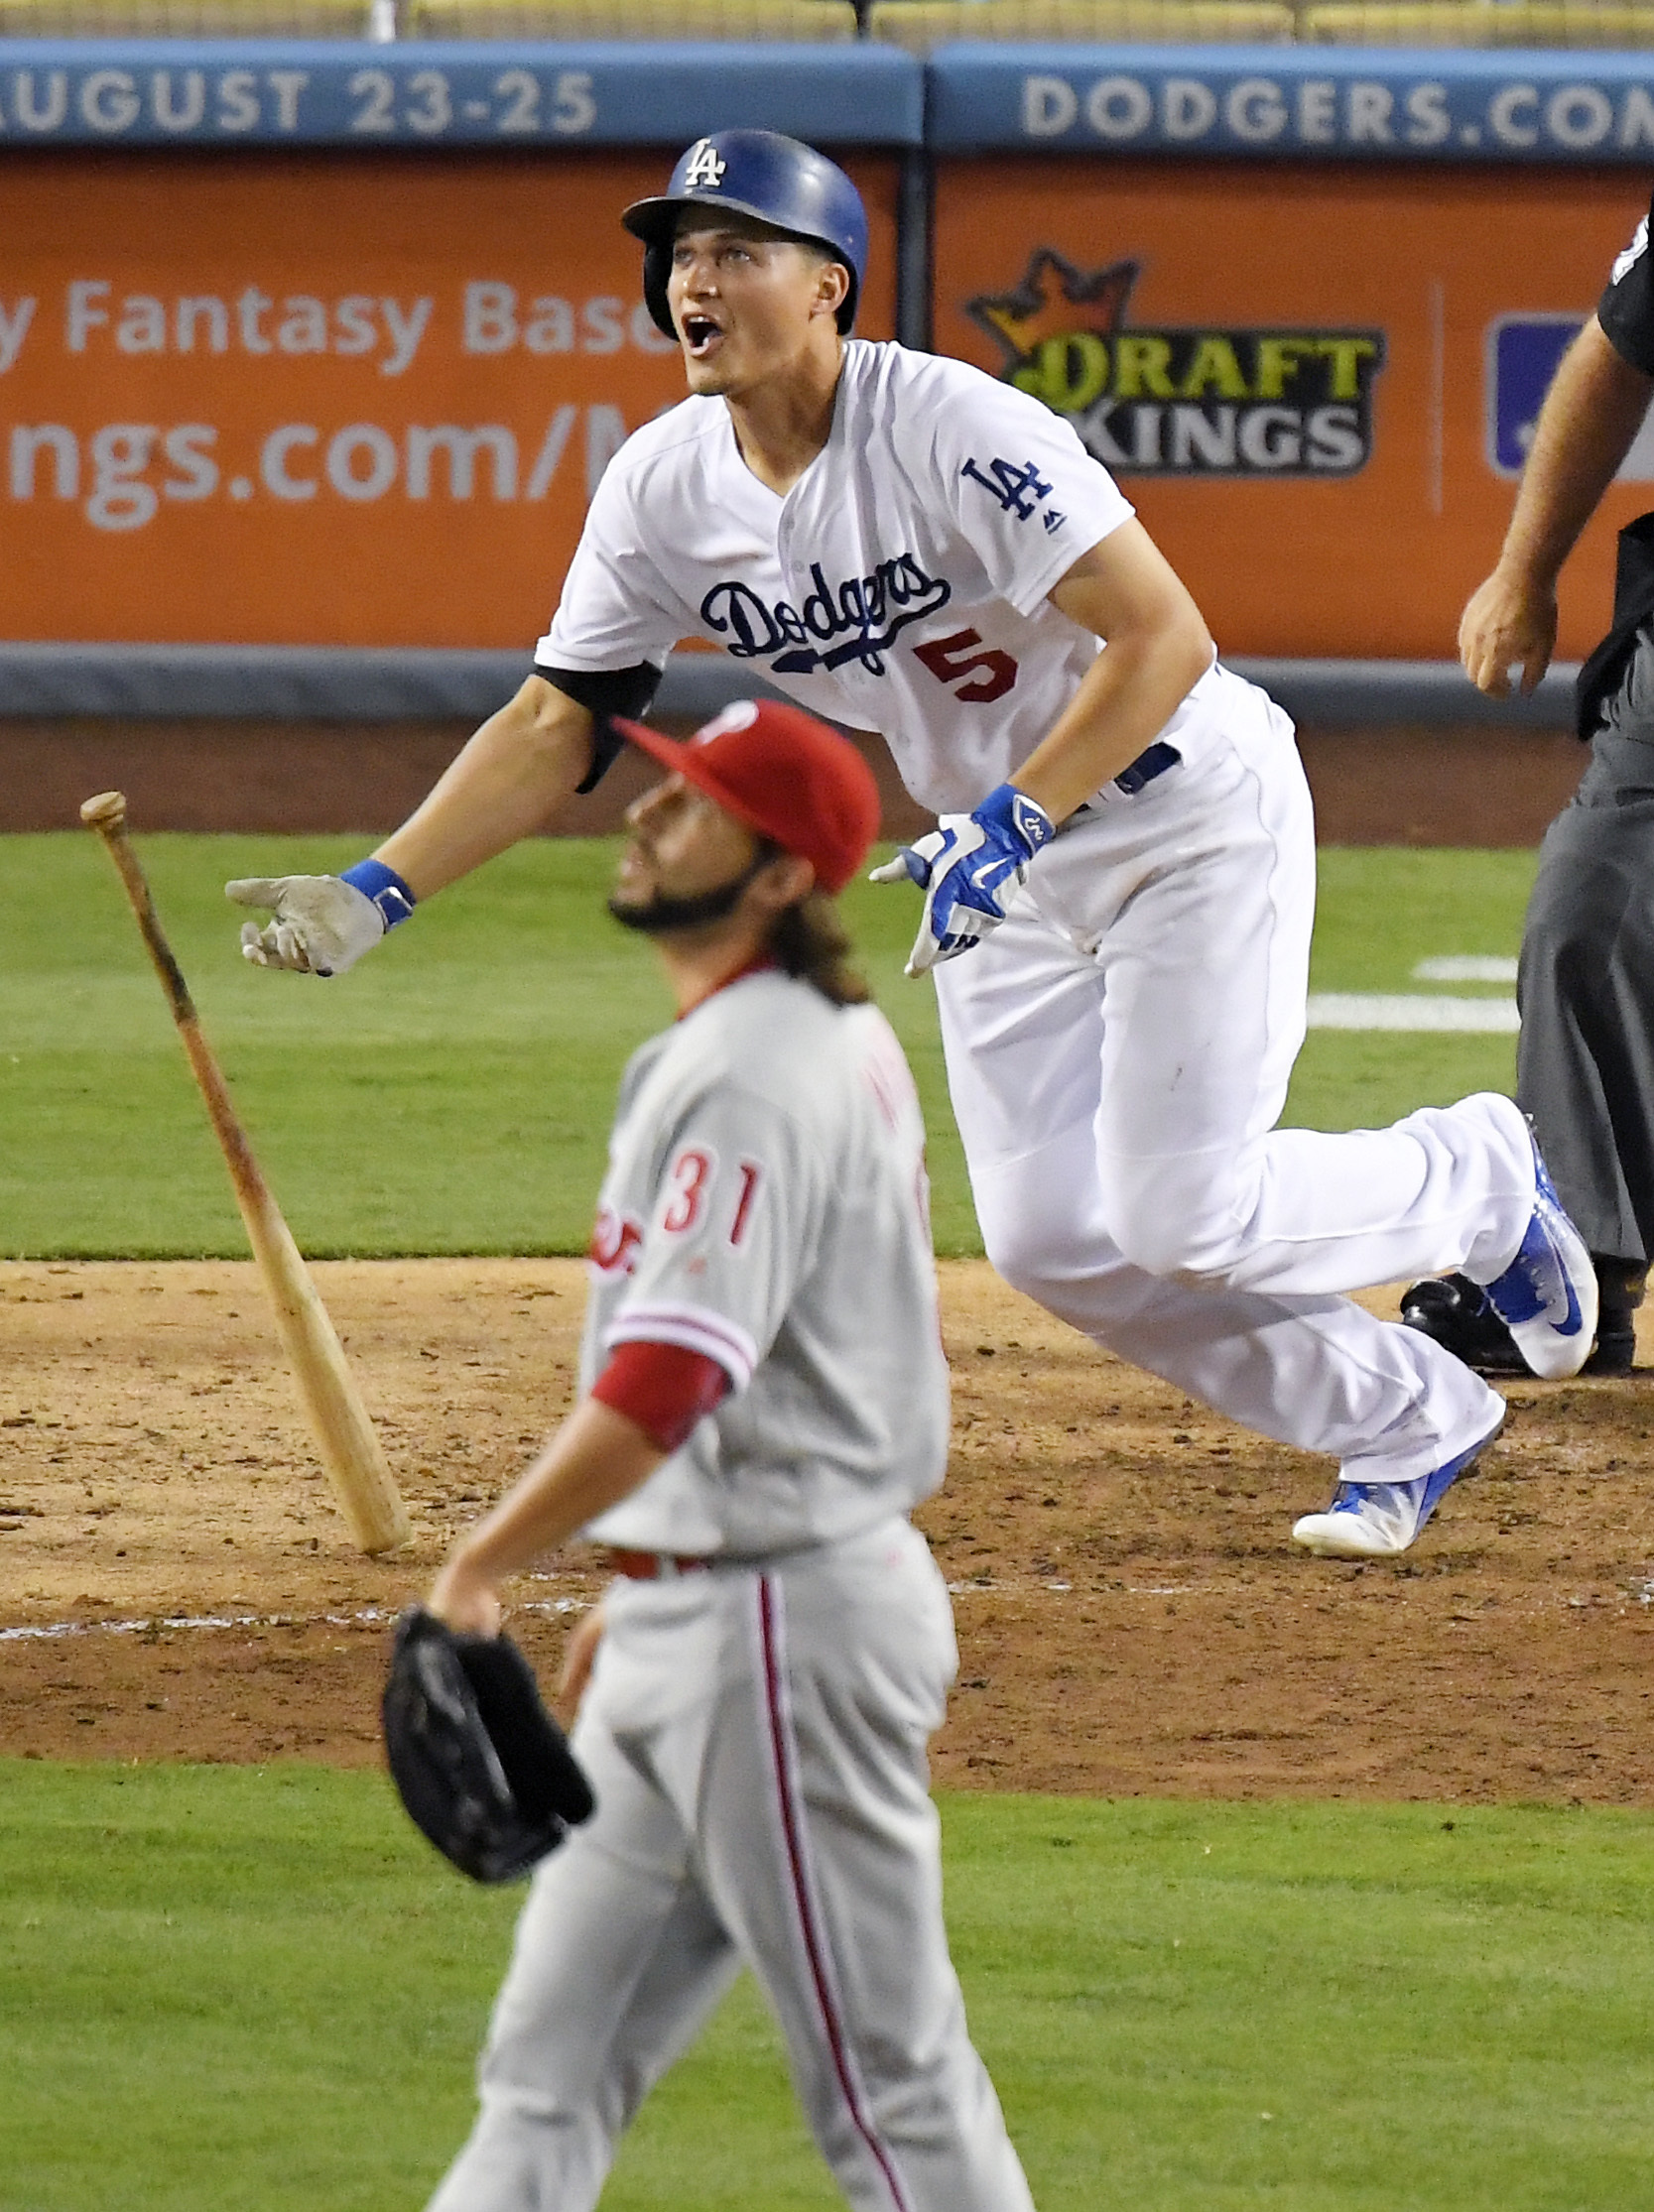 Los Angeles Dodgers' Corey Seager, top, hits a solo home run as Philadelphia Phillies relief pitcher Michael Mariot watches during the seventh inning of a baseball game, Monday, Aug. 8, 2016, in Los Angeles. (AP Photo/Mark J. Terrill)